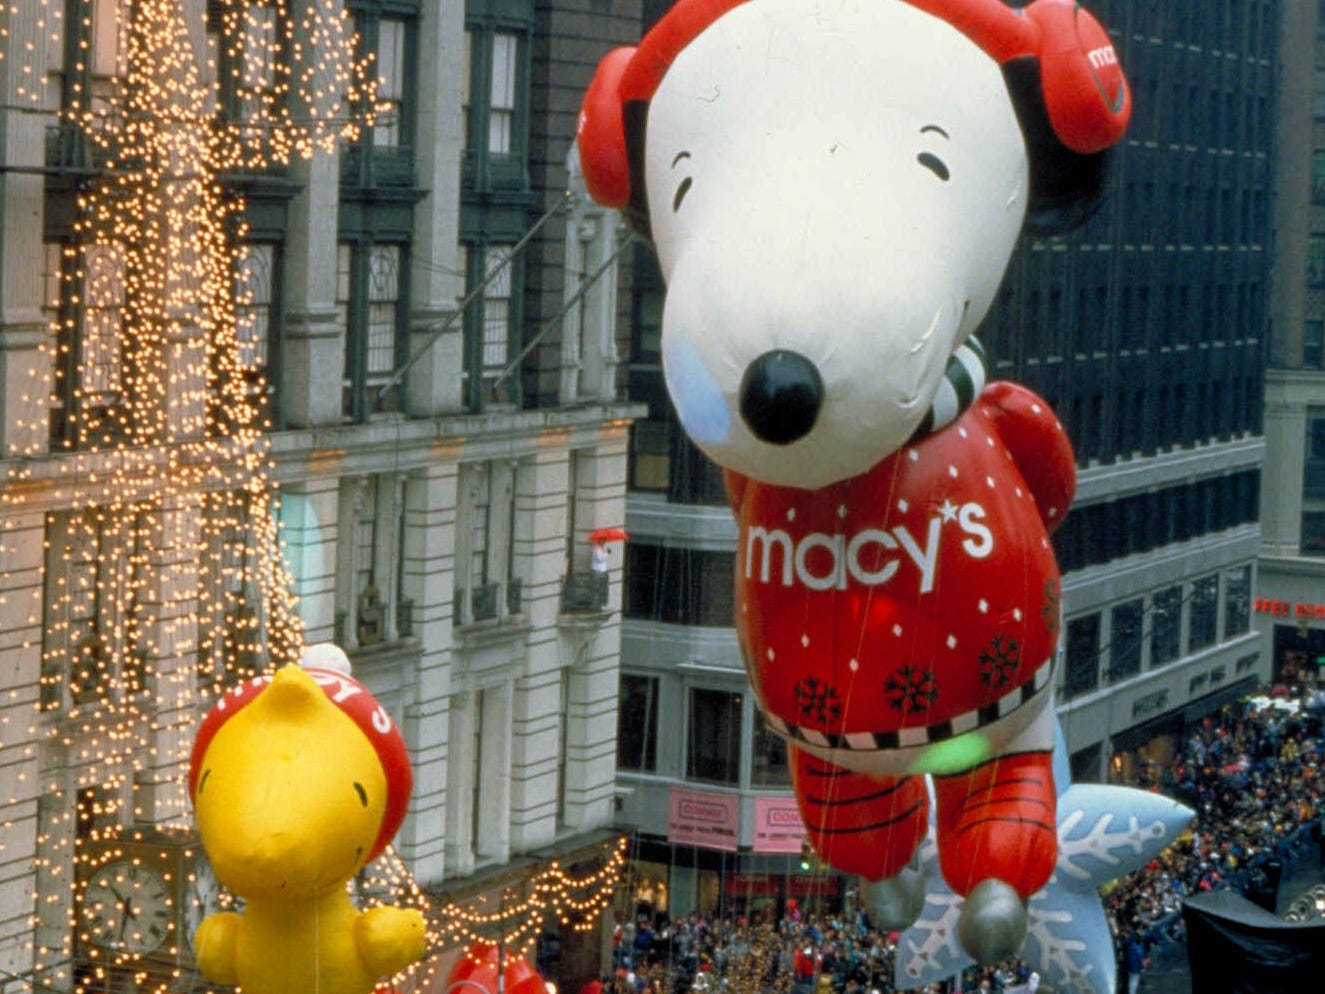 The Peanuts comic strip characters Woodstock and Snoopy balloons are a traditional feature in the Macy's Thanksgiving Day Parade. (Gannett News Service/NBC)